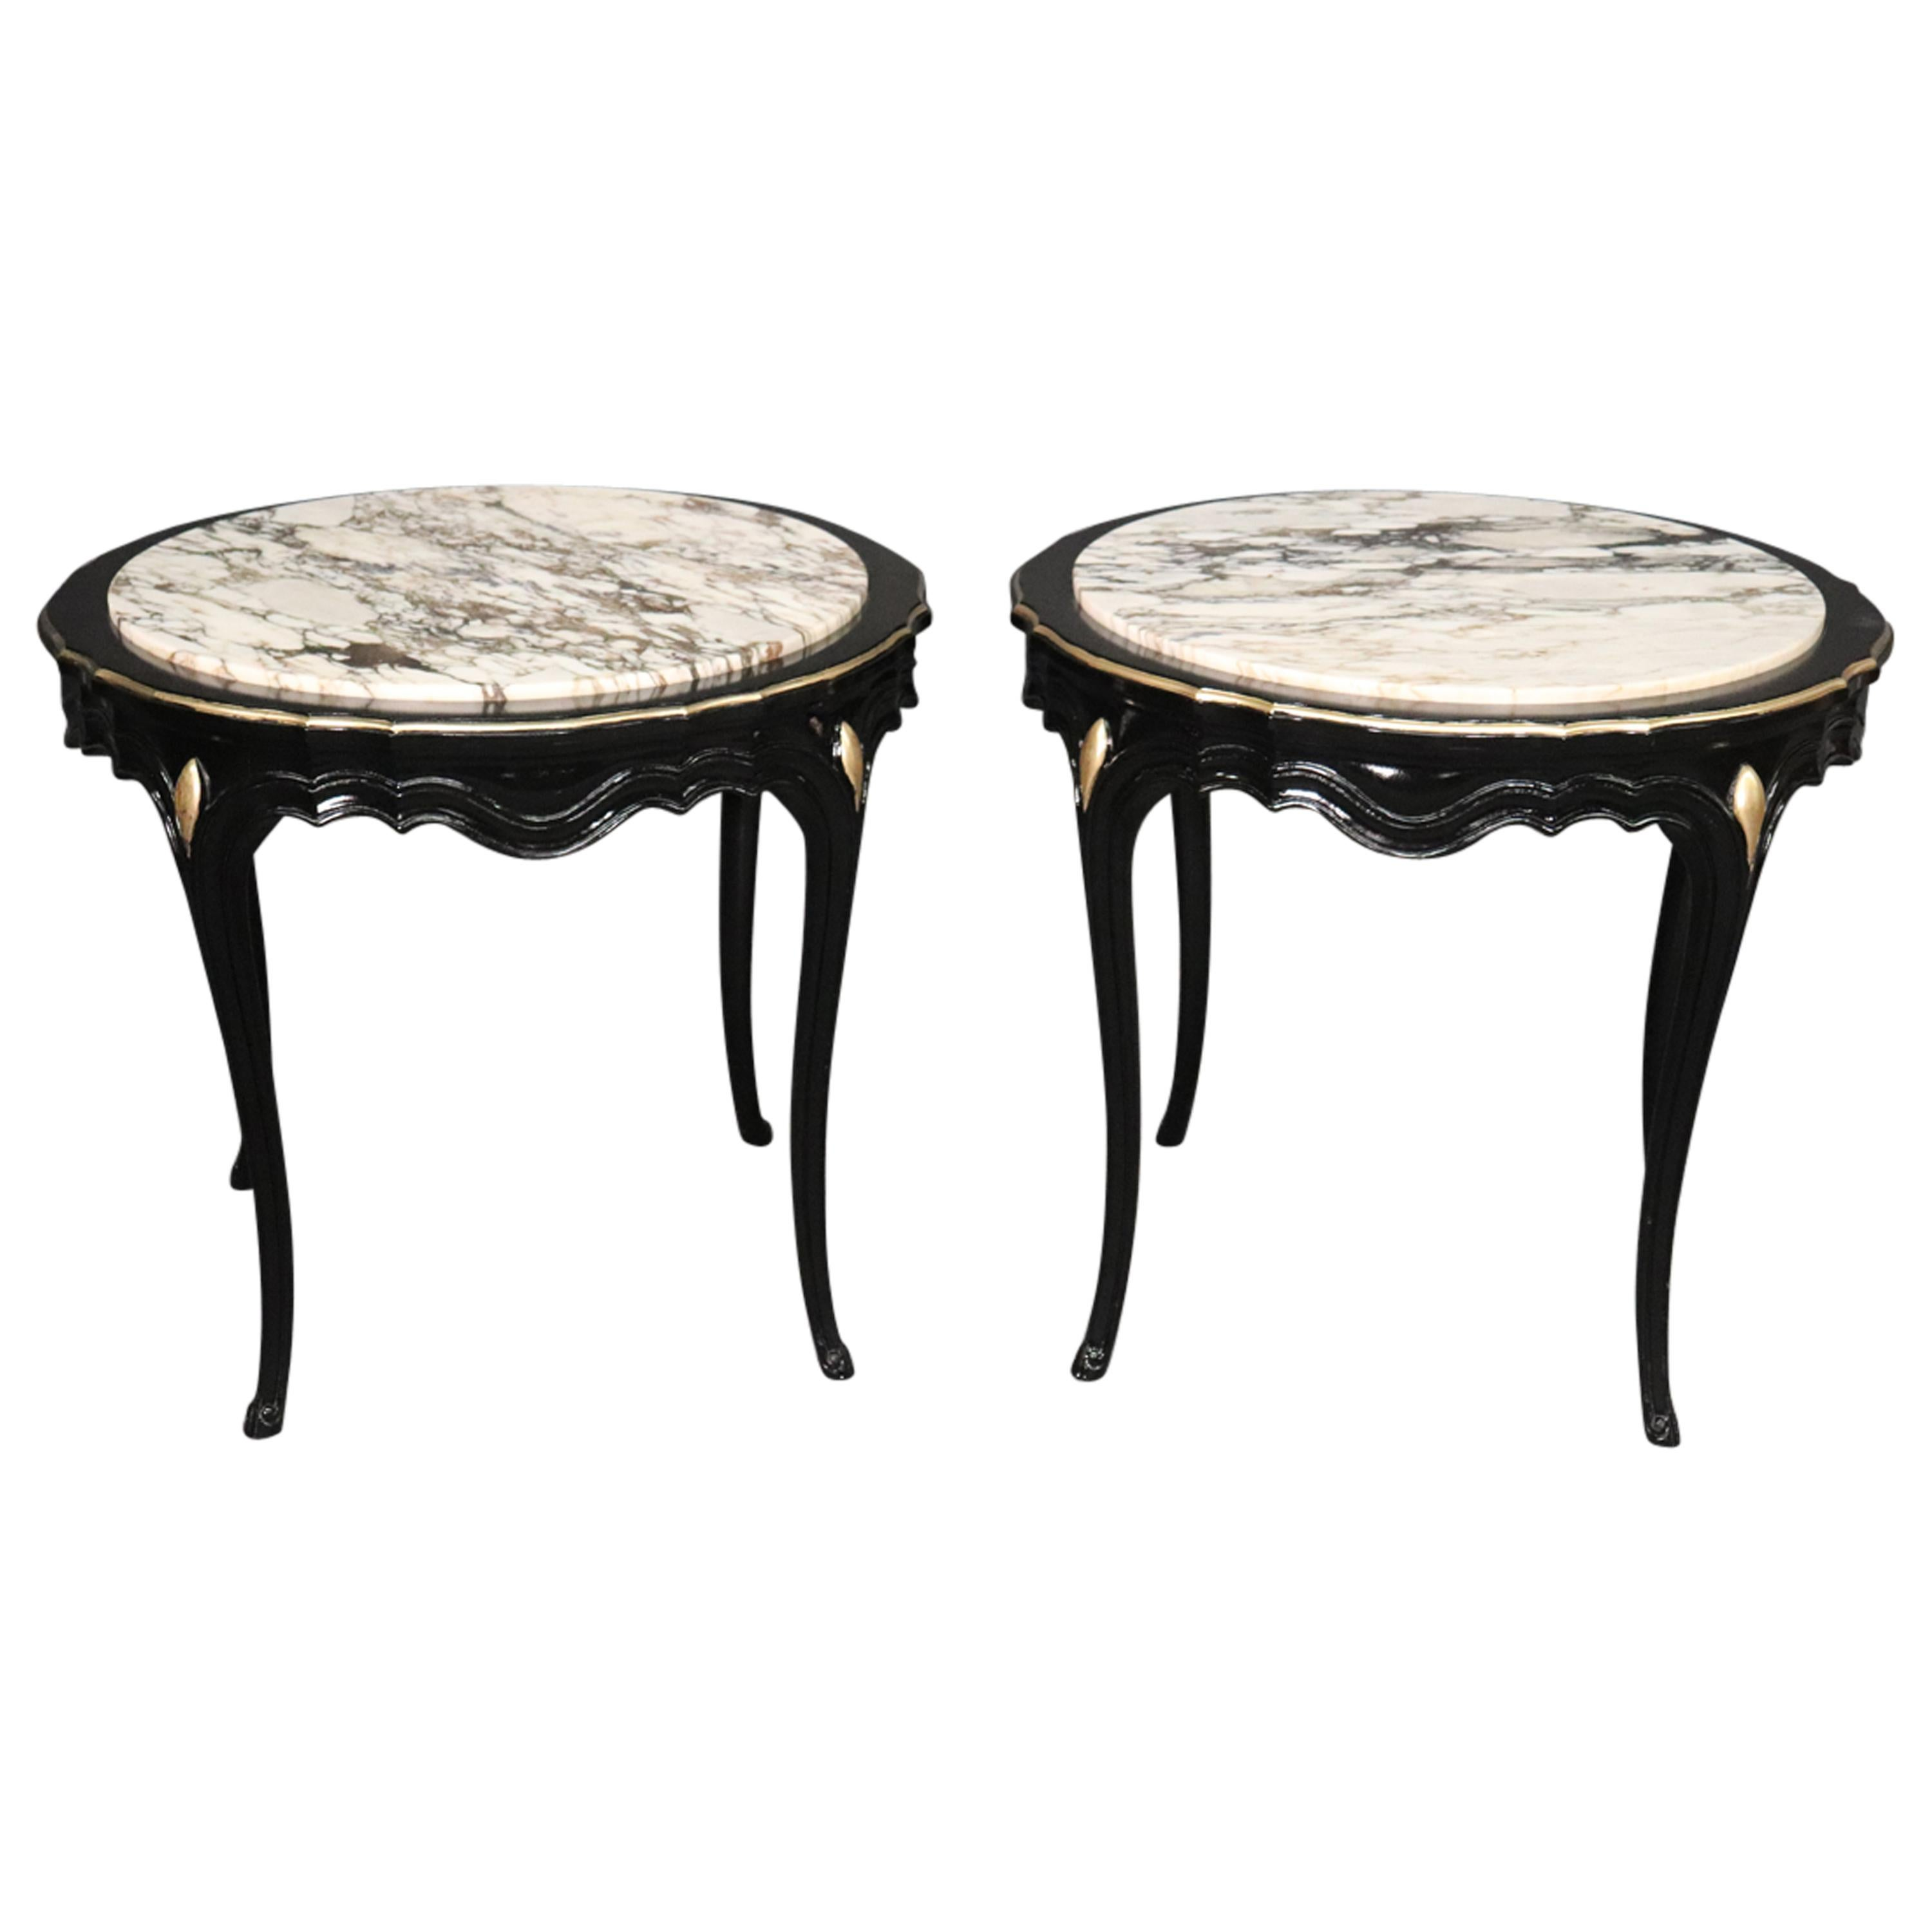 French Louis XV Black Lacquer and Marble-Top Geuridons End Tables, circa 1940s